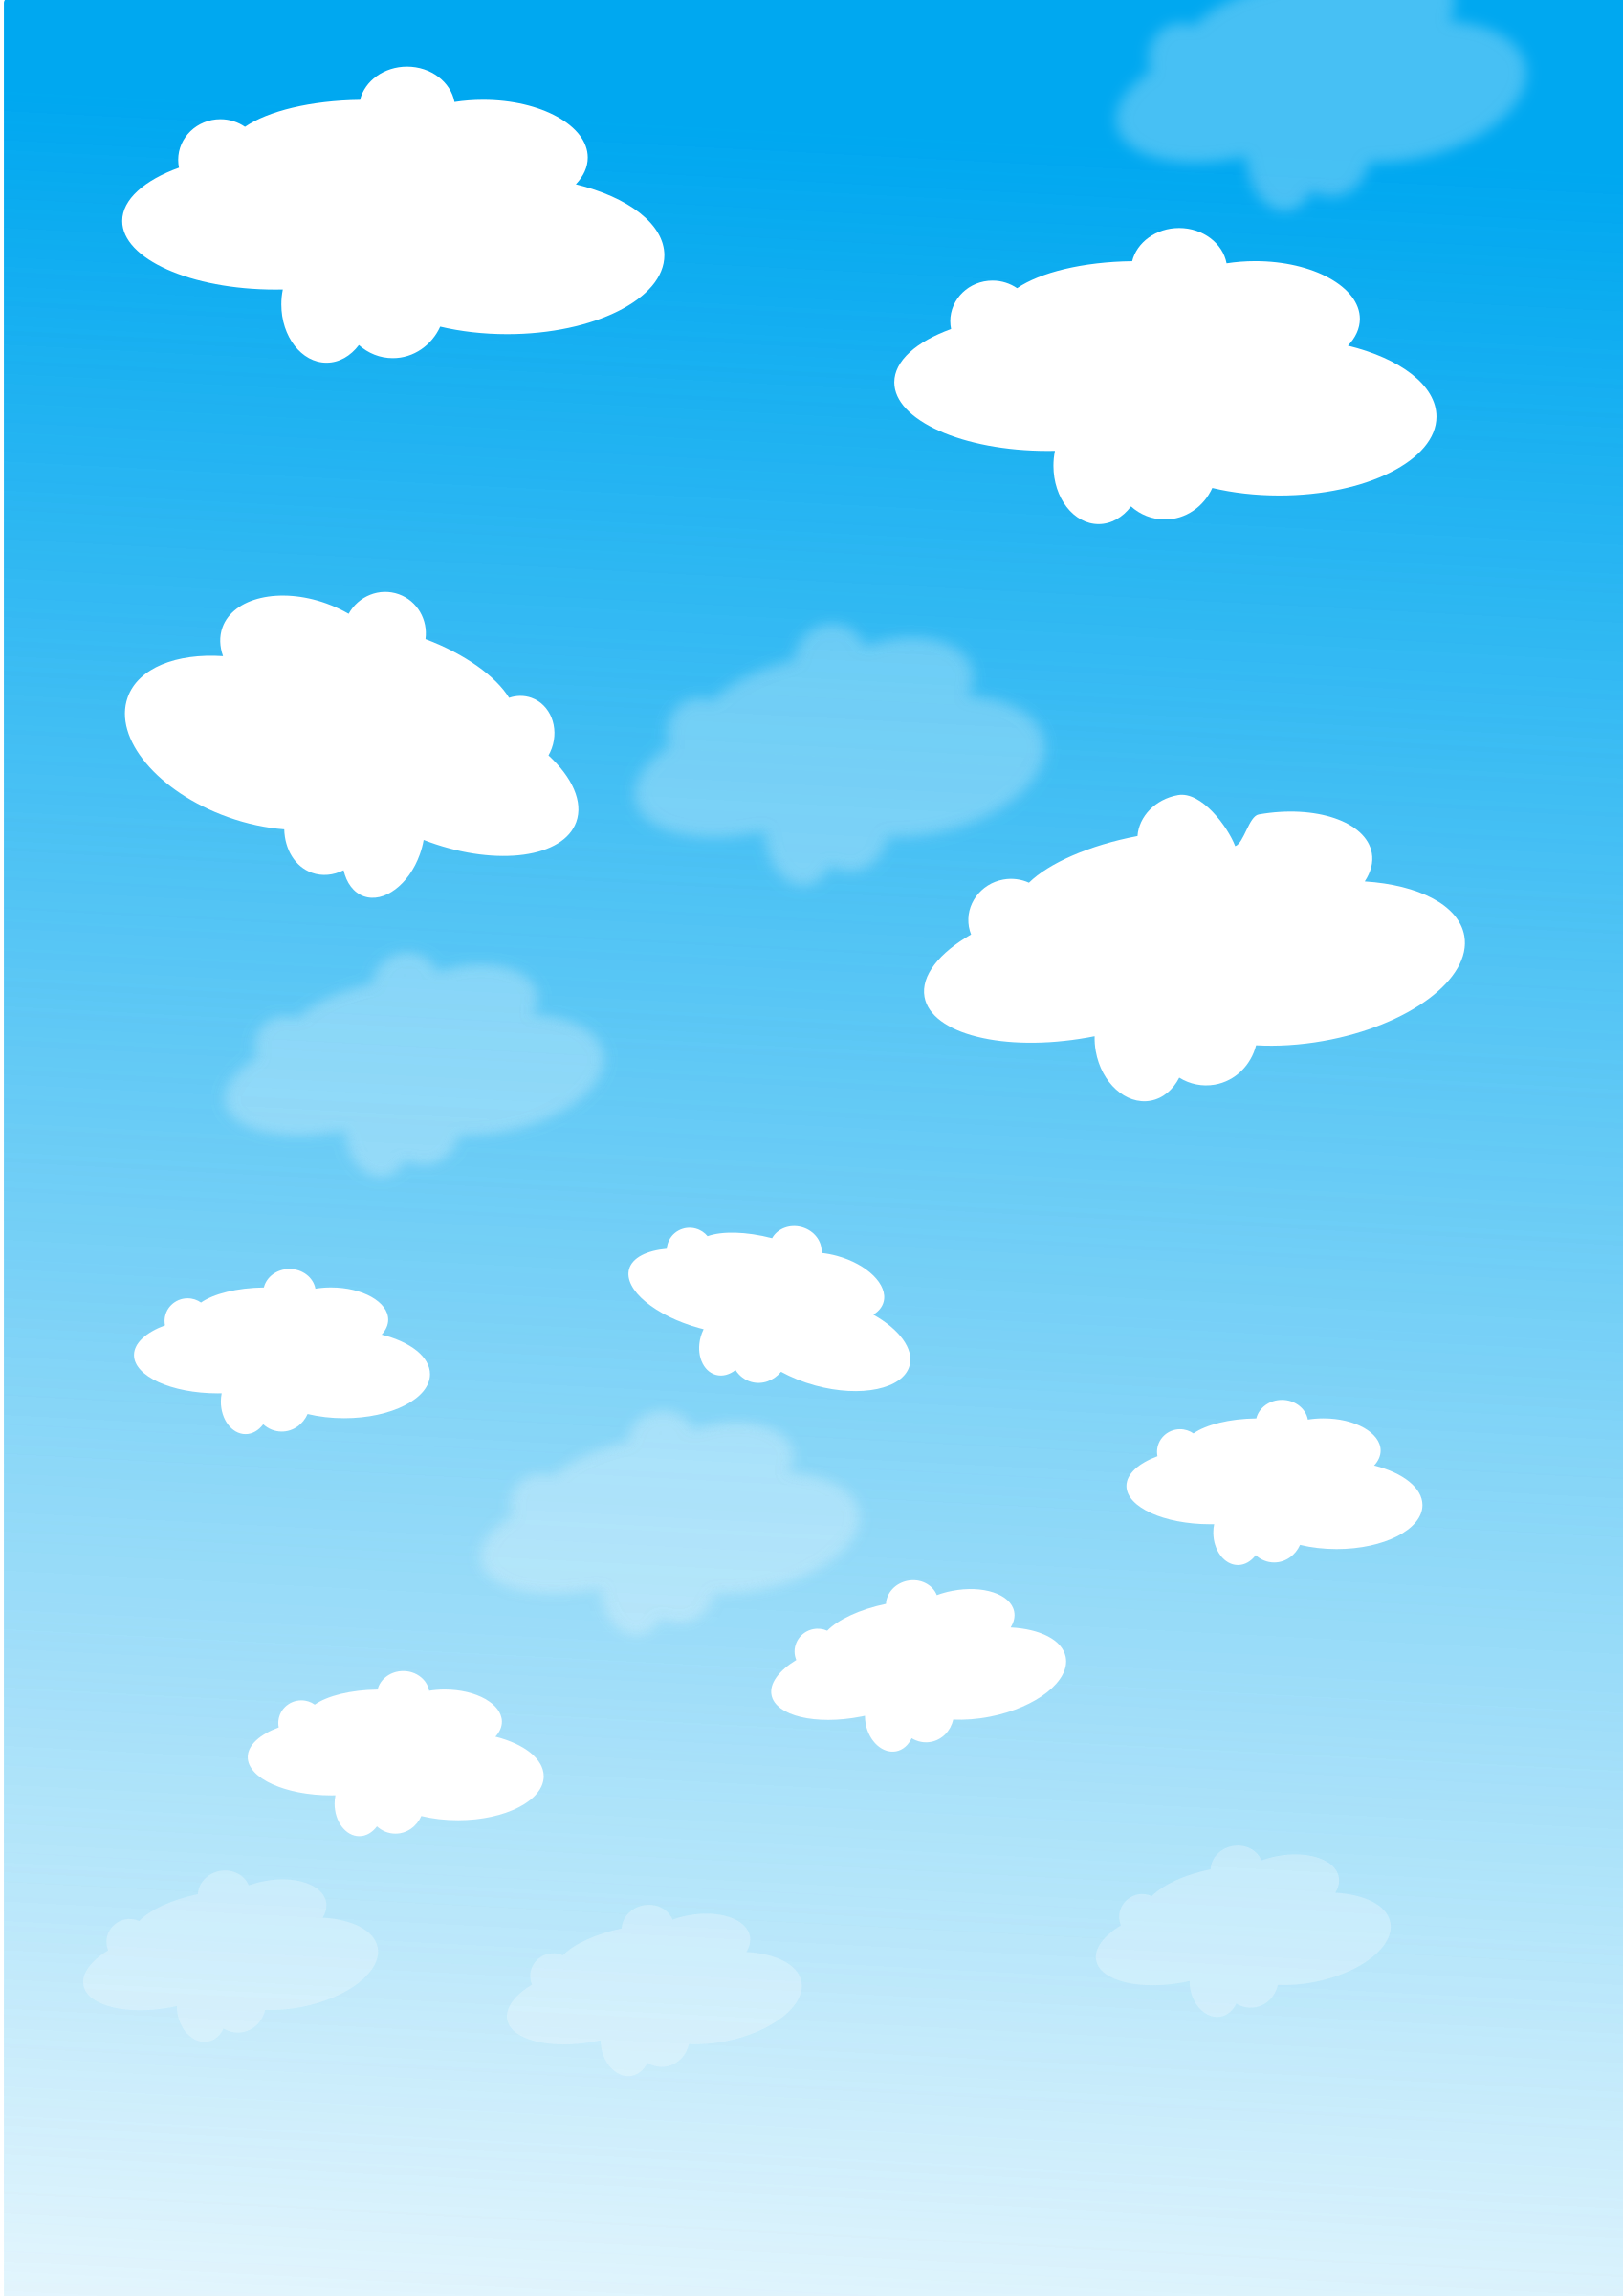 Sunny clipart daytime sky. With clouds big image